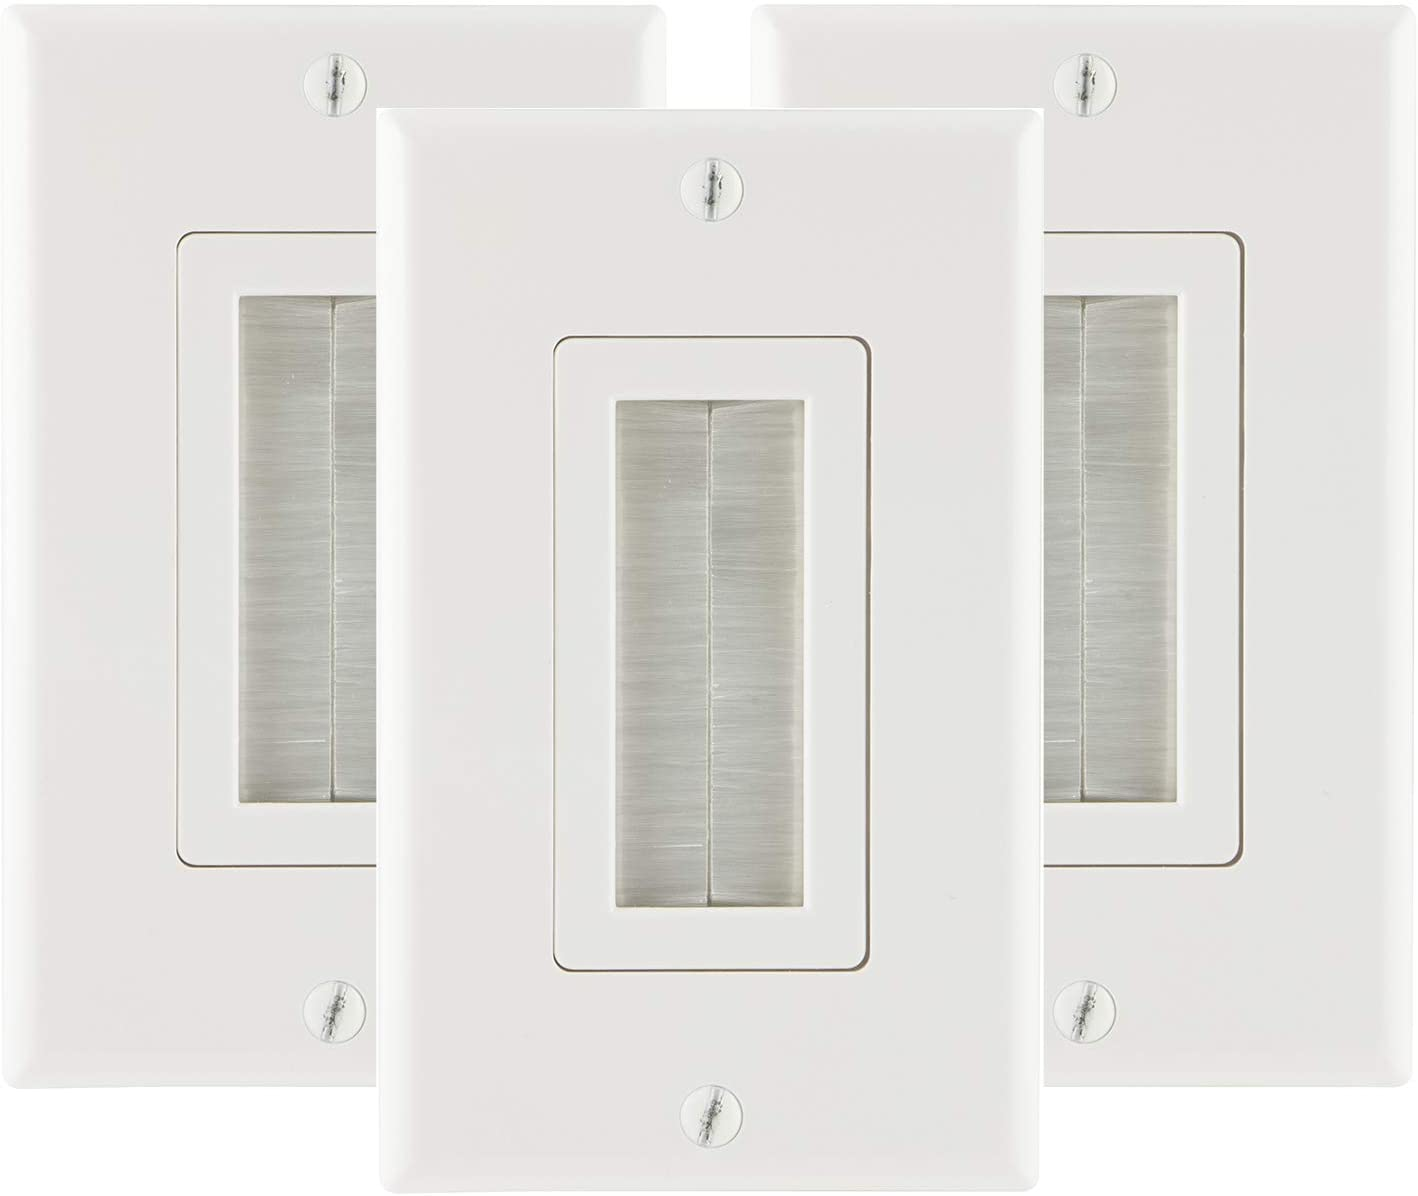 GE Brush Wall Plate, 3 Pack, Cable Pass Through Insert, Single Gang, Decora Style, for in-Wall Installation of Cables and Wires, HDTV, HDMI, Coax, Speaker Wire, Home Theatre Systems, White, 57375